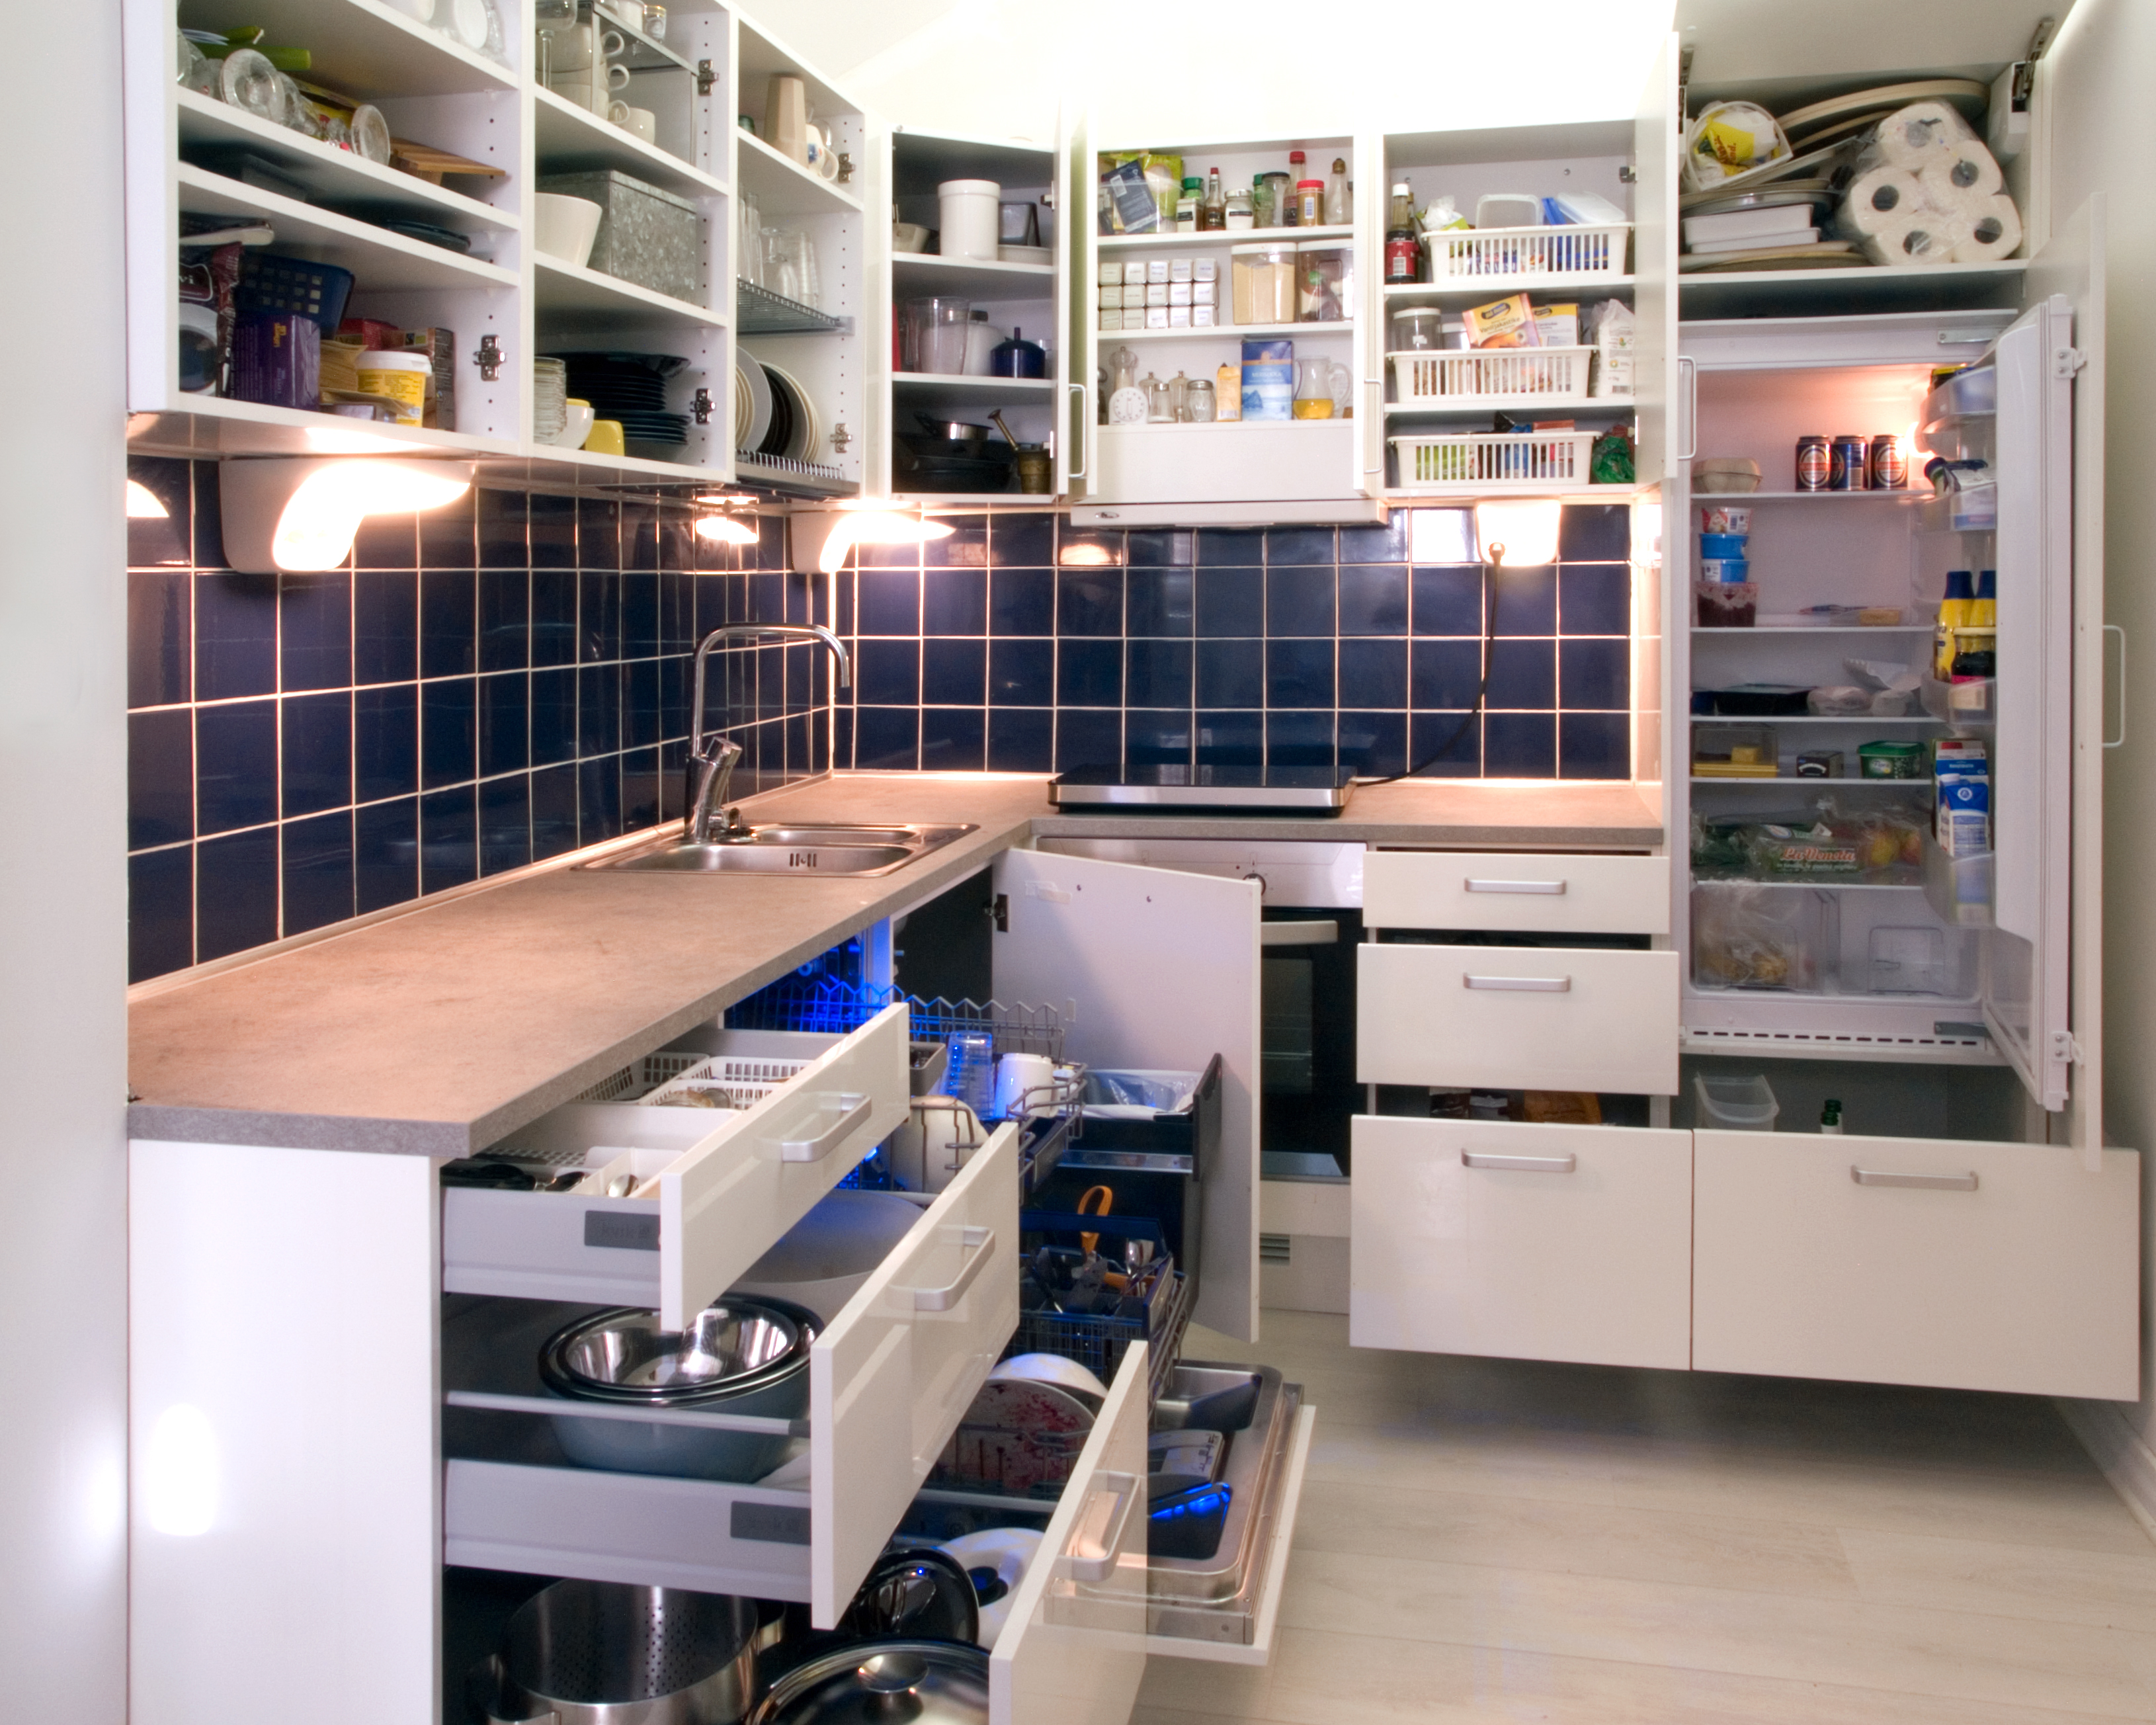 9 Important Elements to A Functional Kitchen Design